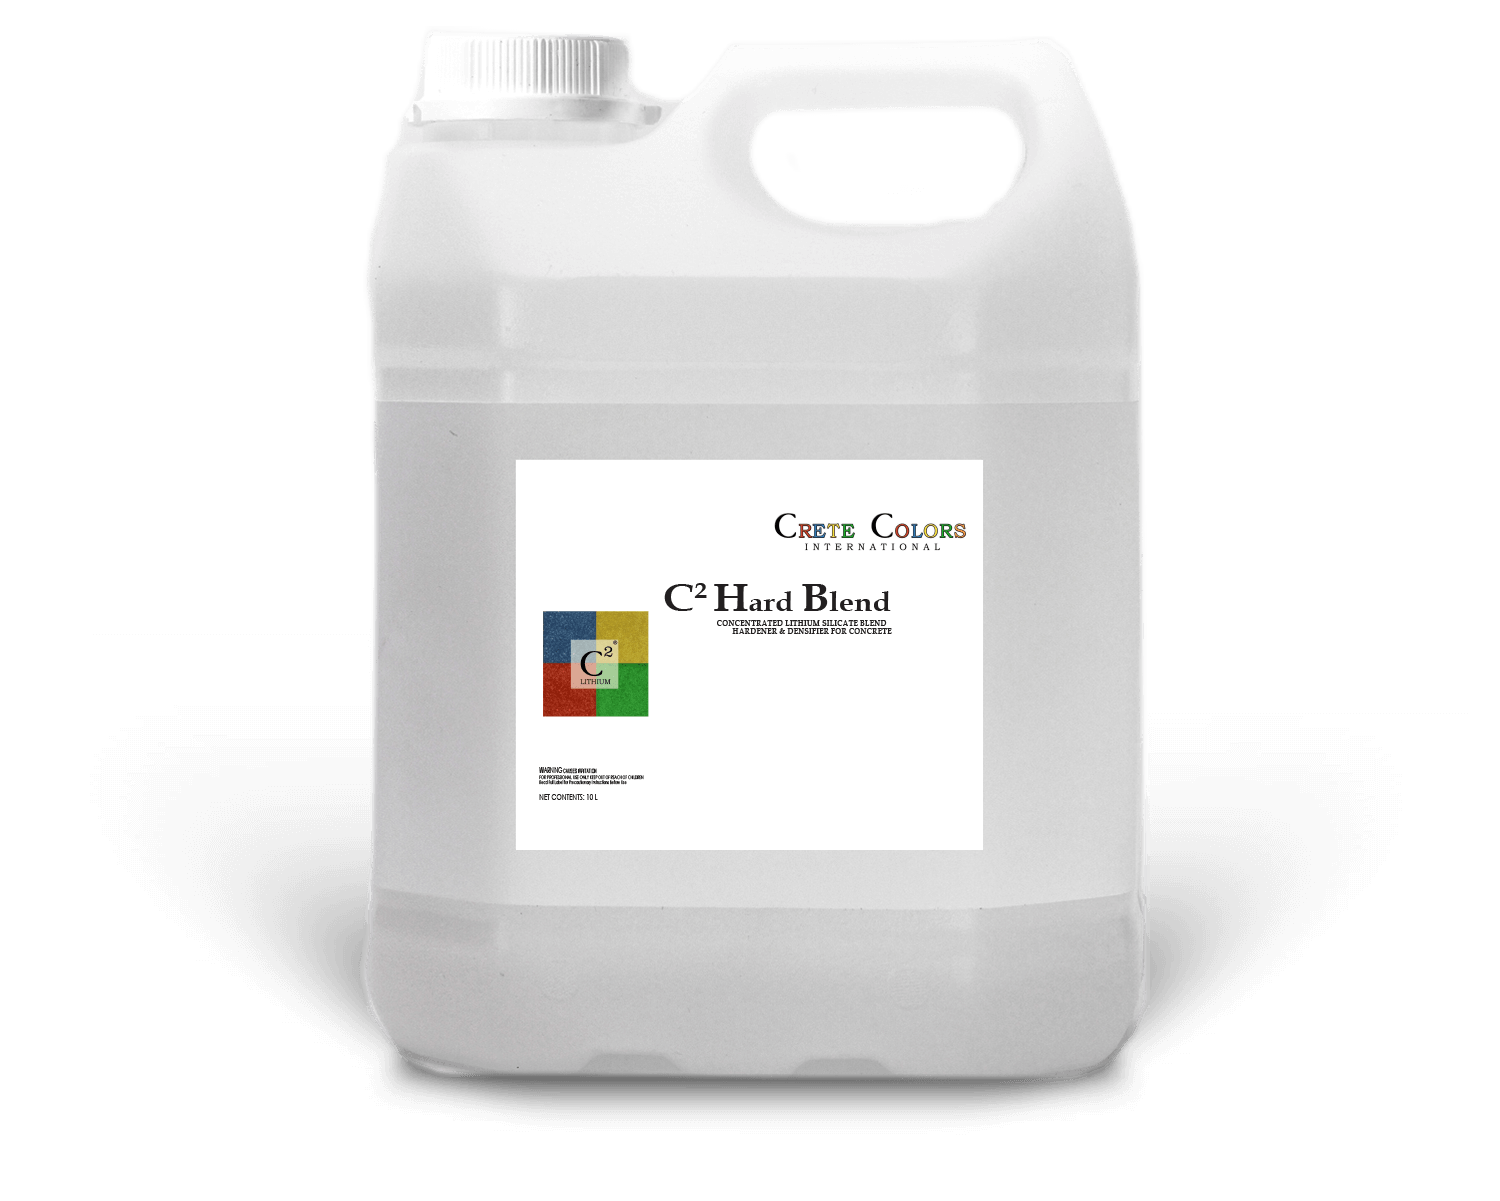 C2 Hard Blend lithium densifier for concrete floors